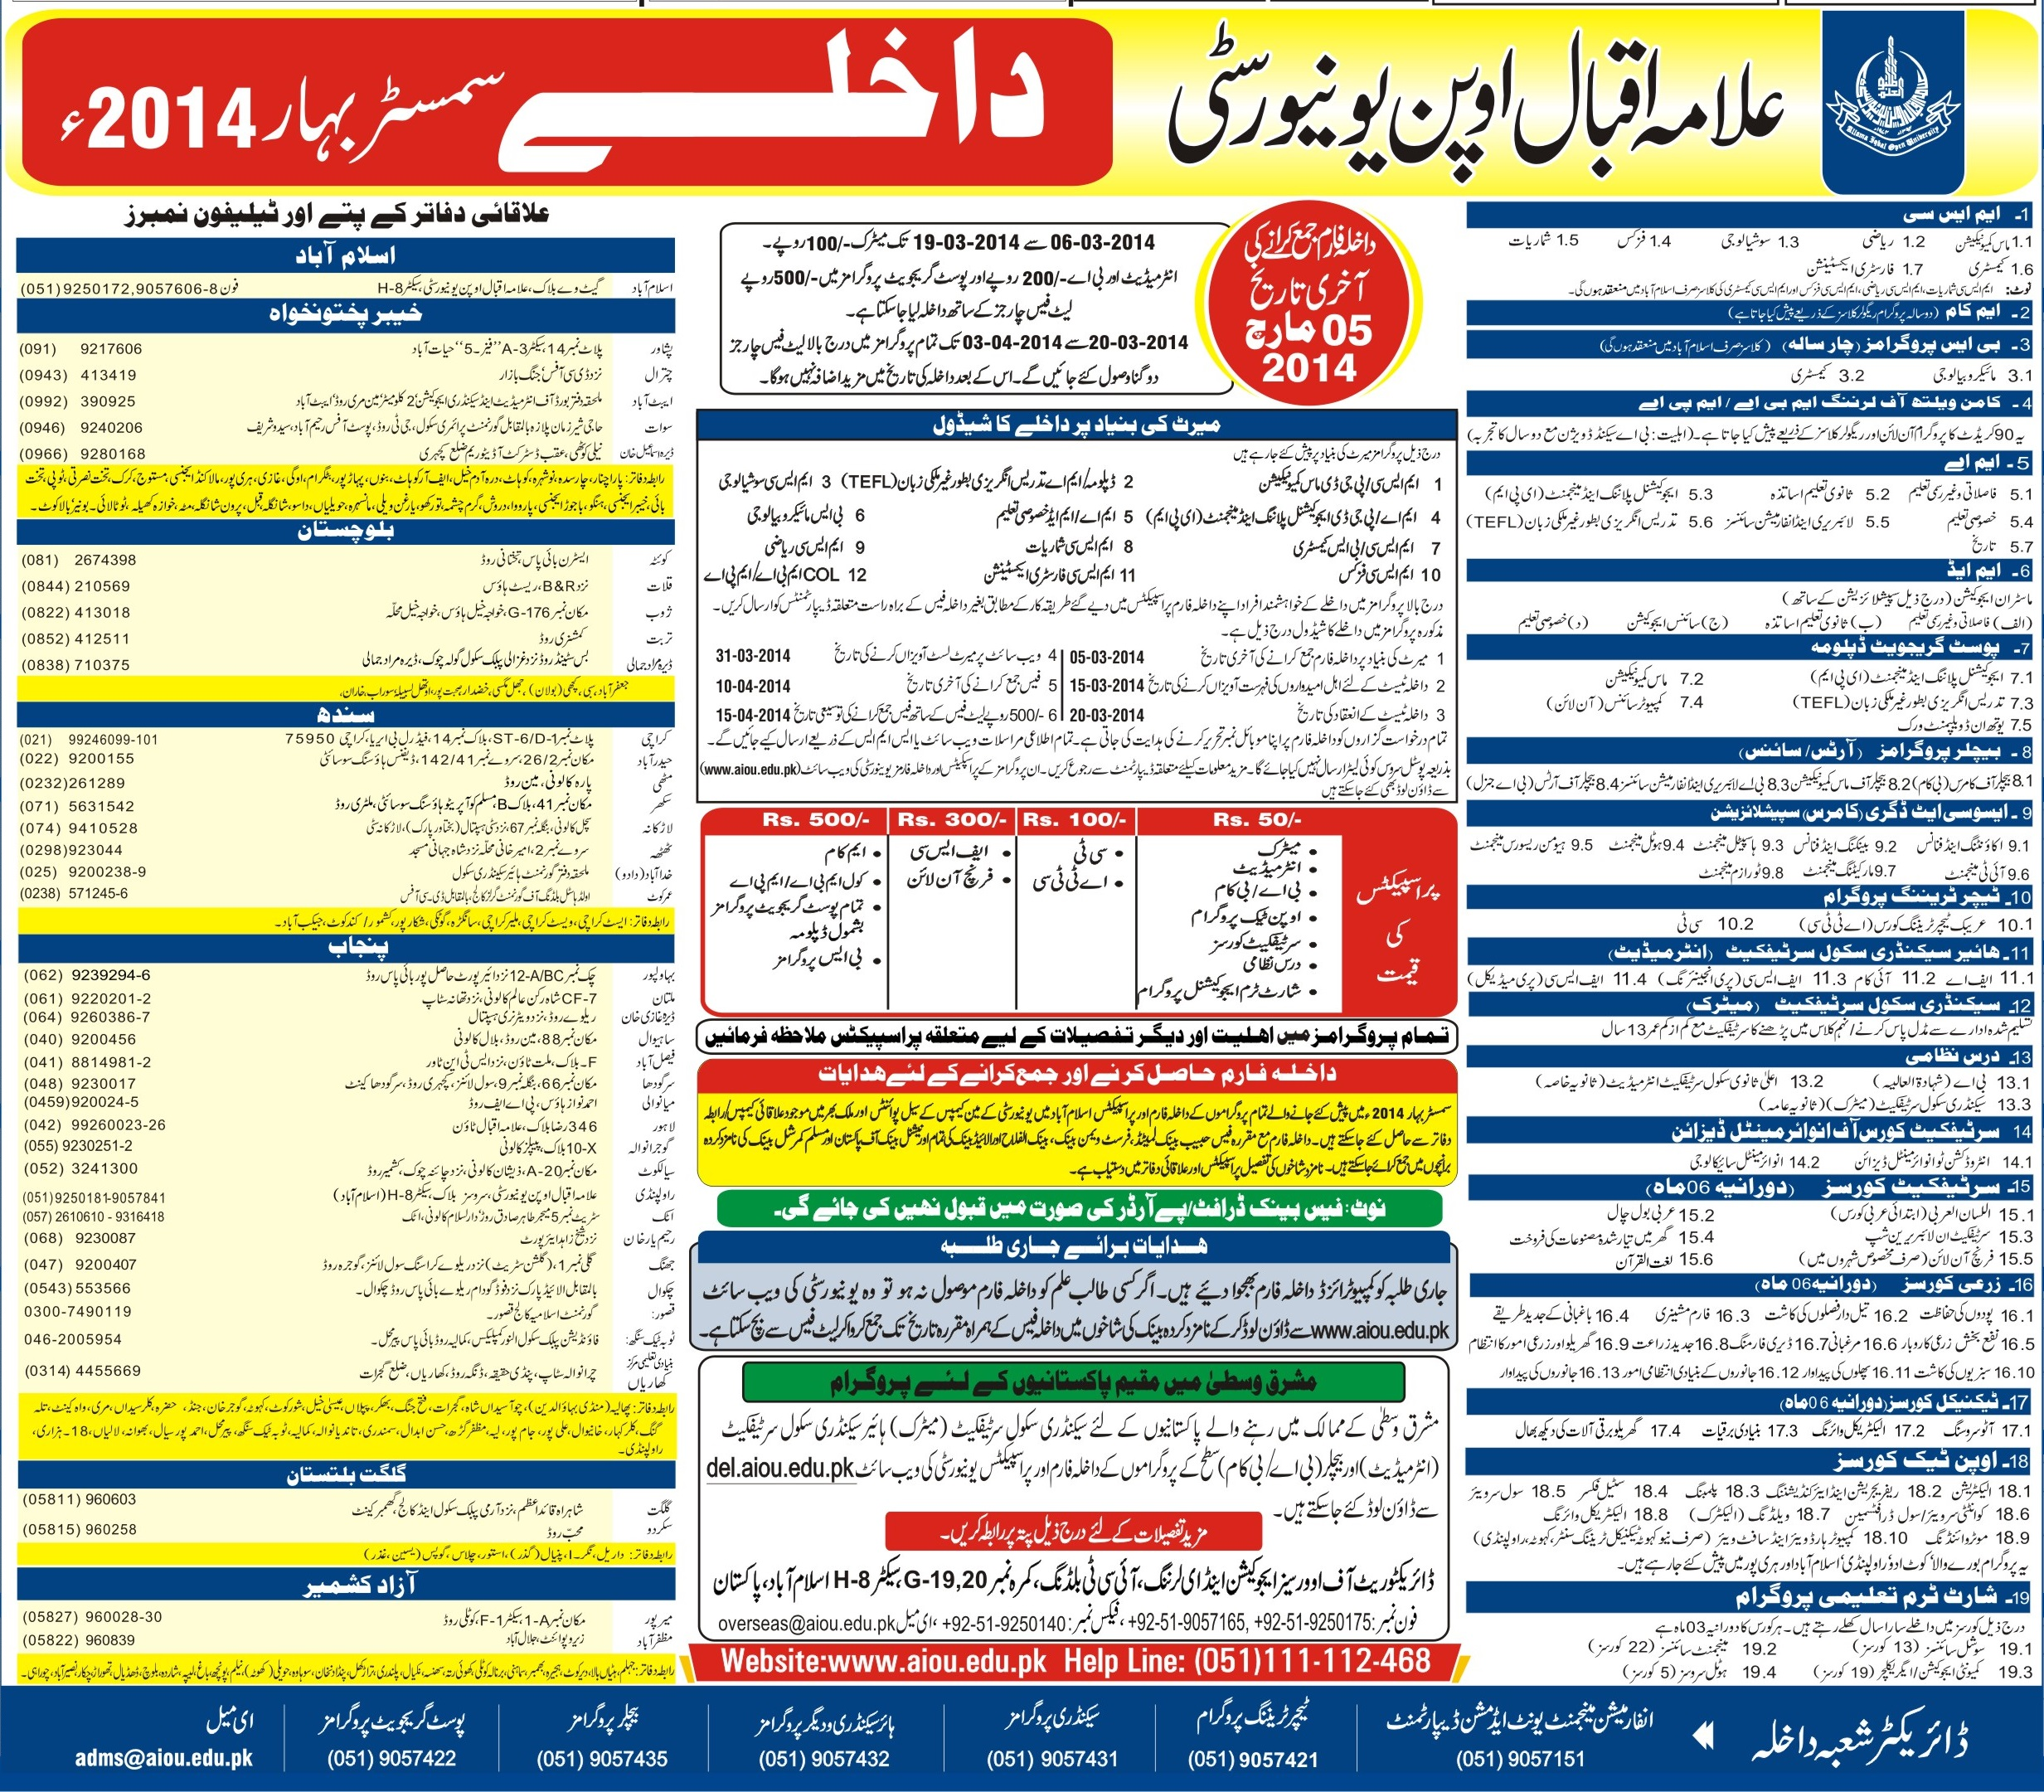 Allama Iqbal Open University Islamabad Spring Admission 2014